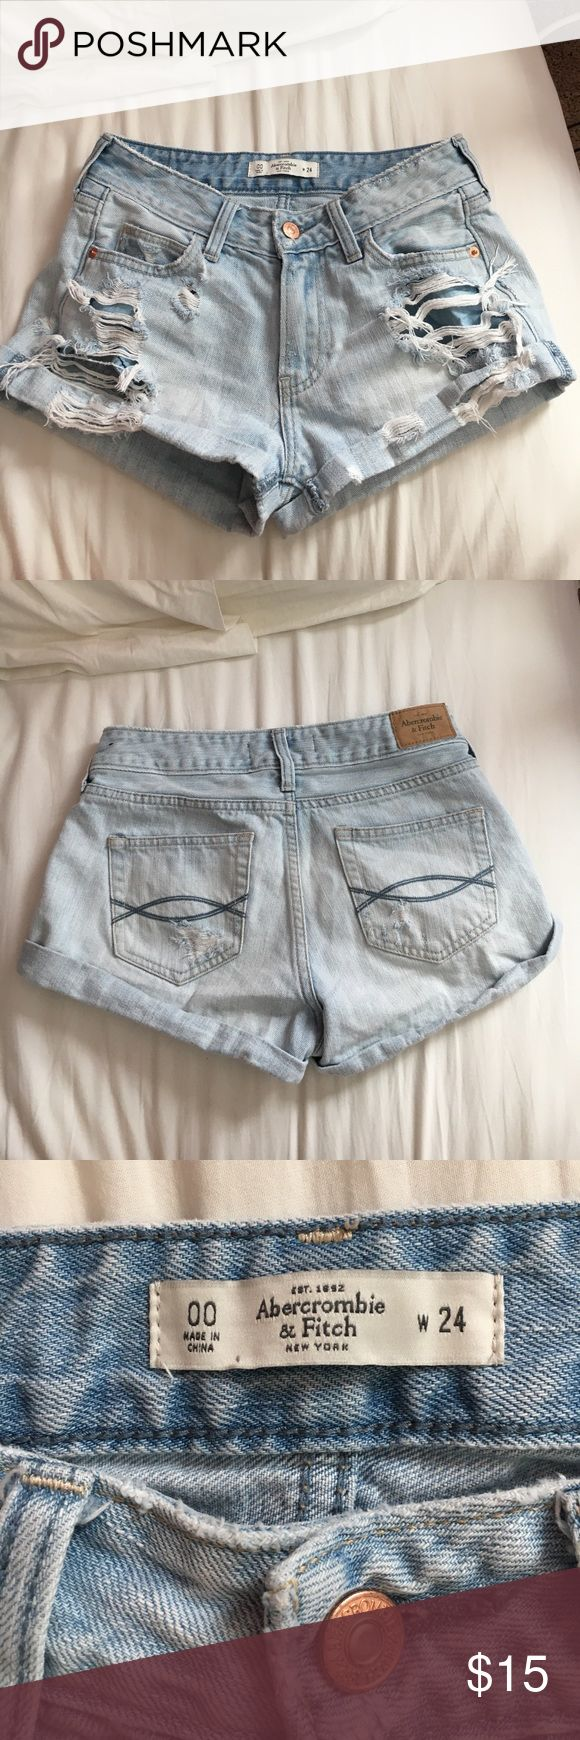 Abercrombie & Fitch Light Wash Distressed Shorts Size 00, W24! Distressing and color is very cute and pairs well. Comfortable denim! Barely worn as it does not fit me, condition is like new! Abercrombie & Fitch Shorts Jean Shorts